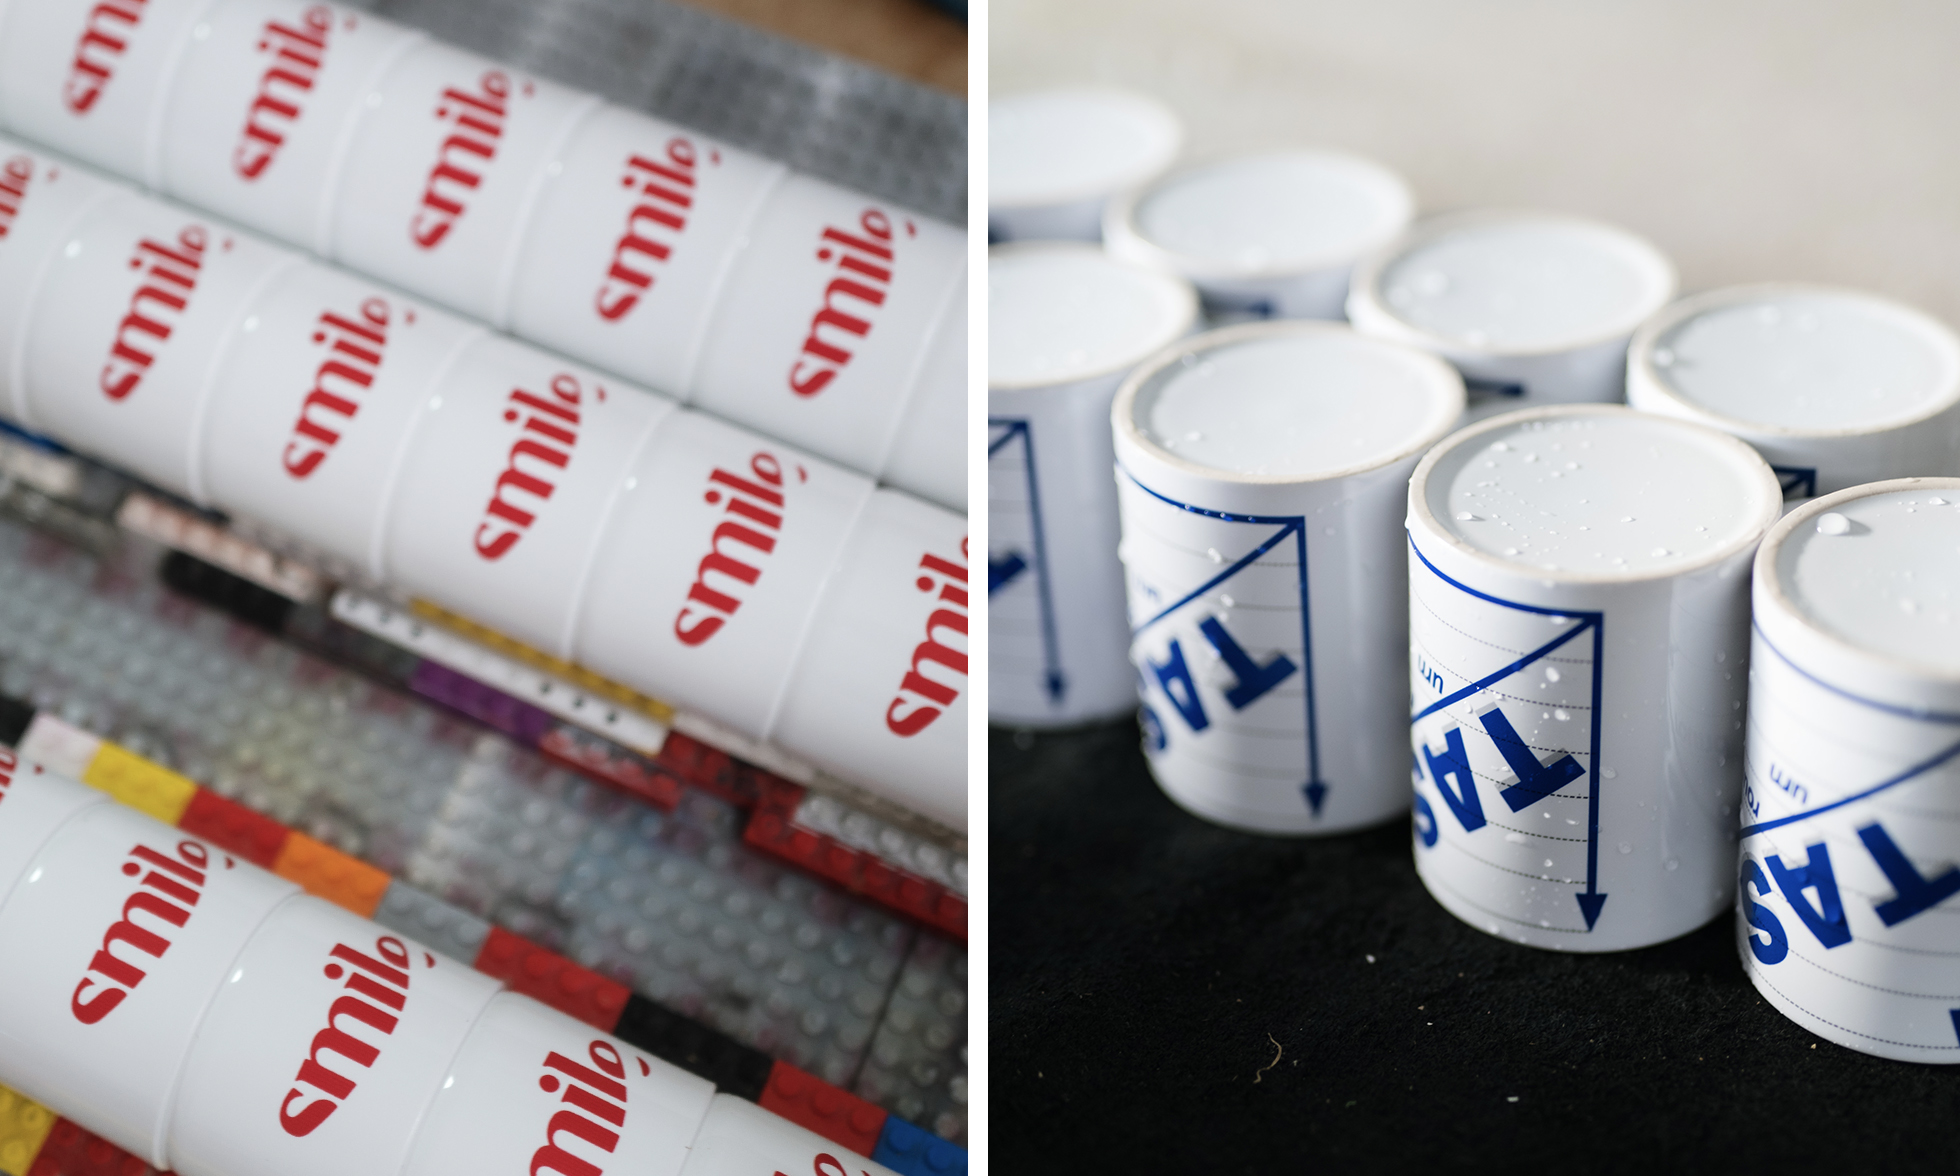 Left: Promotional material printed with a logo Right: Mugs with printed logo